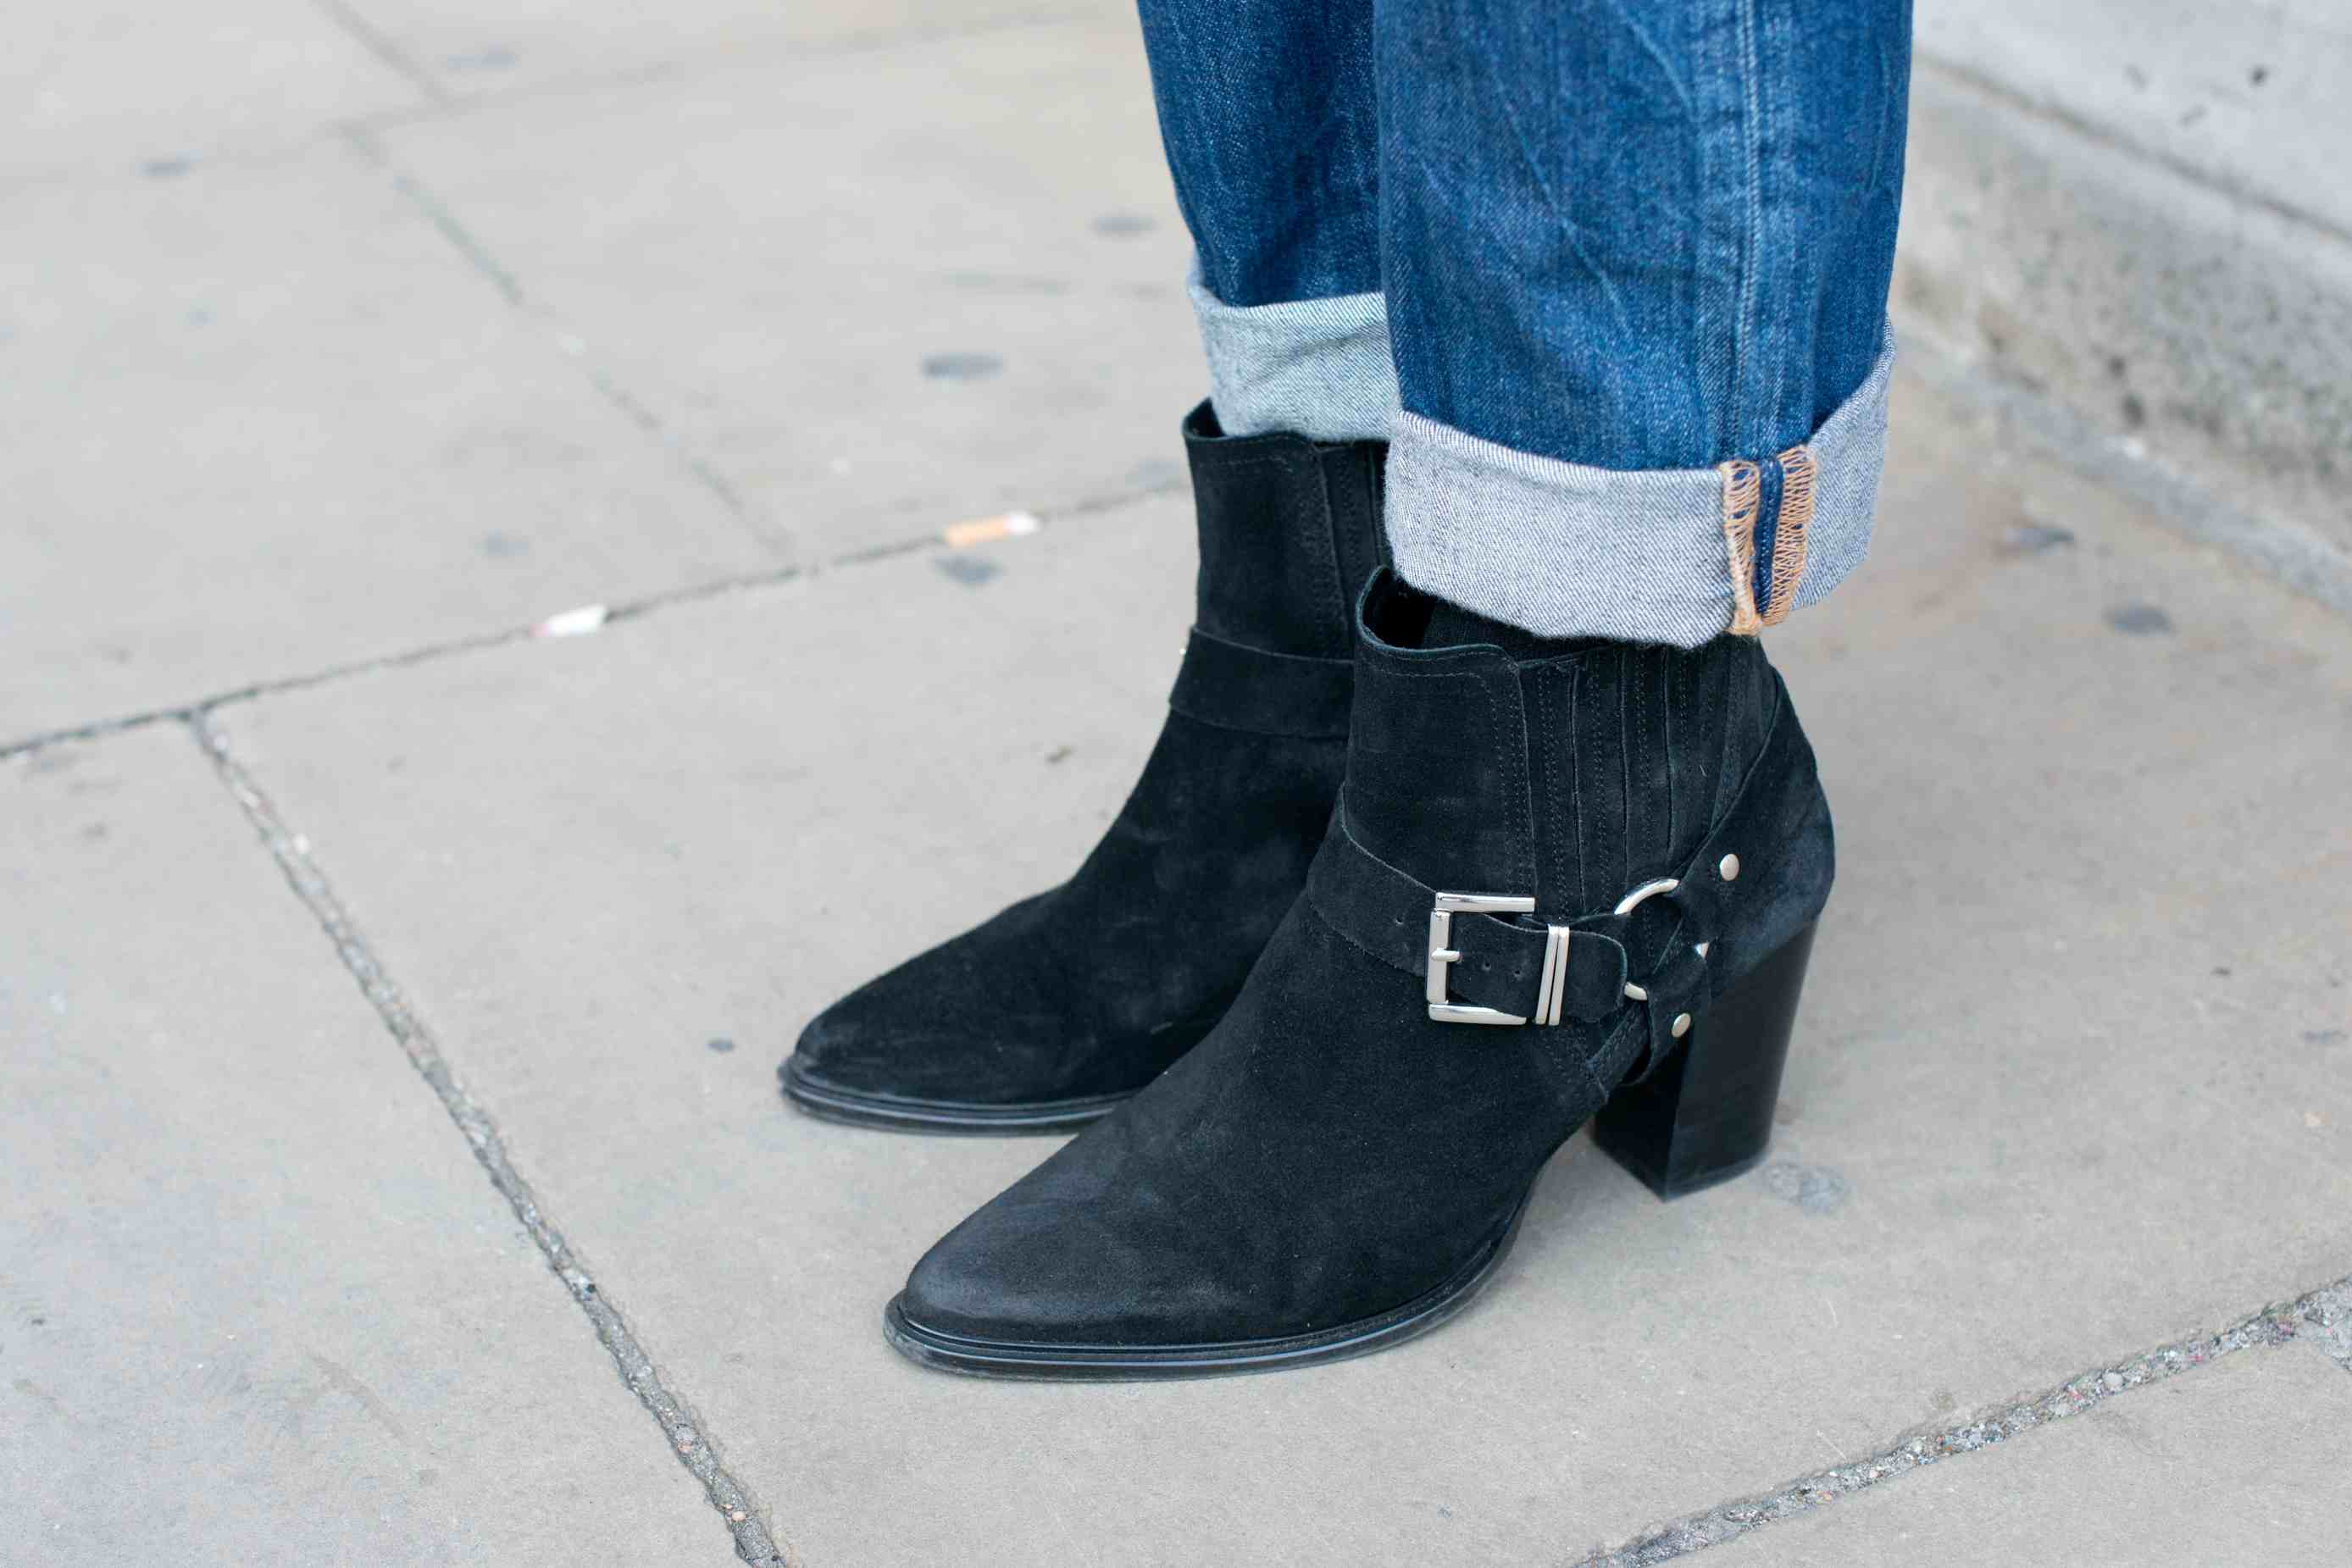 f192d12ba99d How to Wear Ankle Boots and Jeans